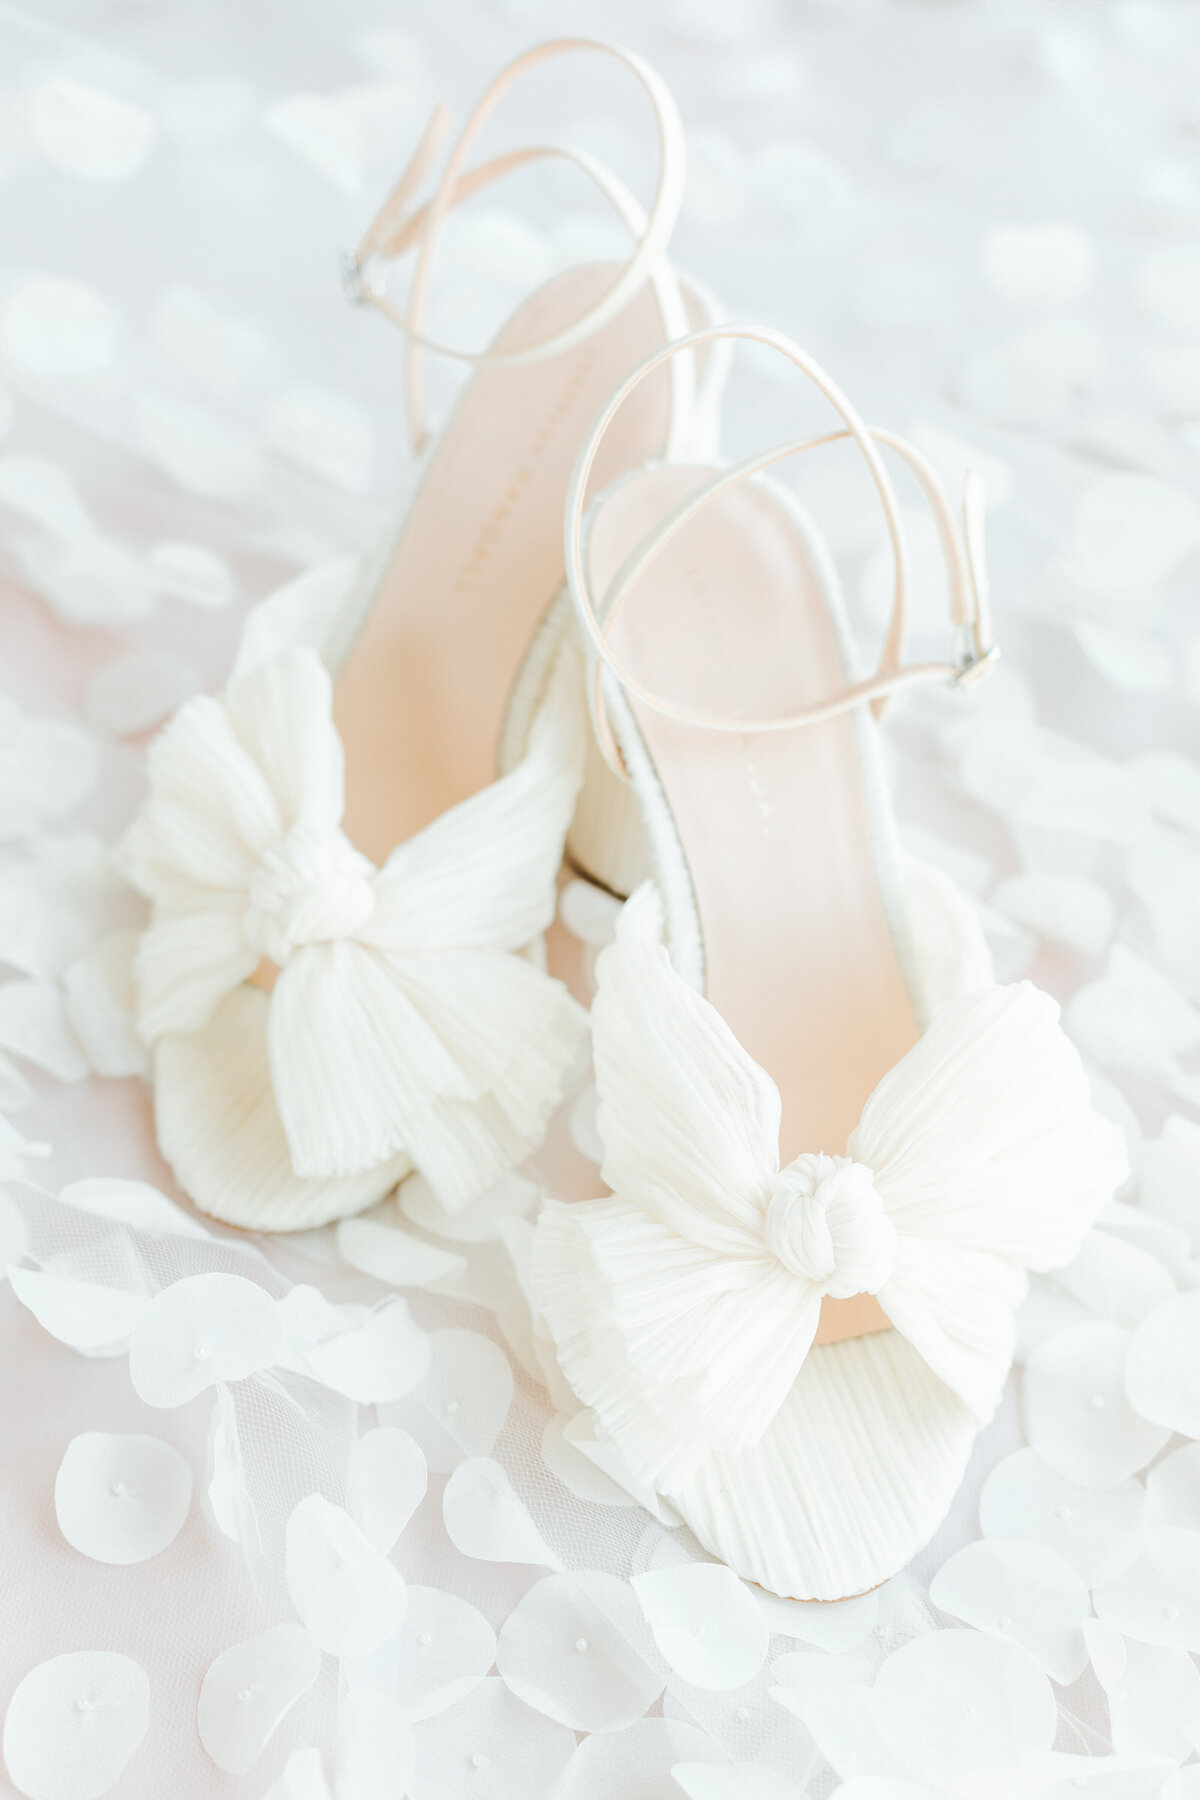 Elegant Bridal Shoes Wedding Flataly